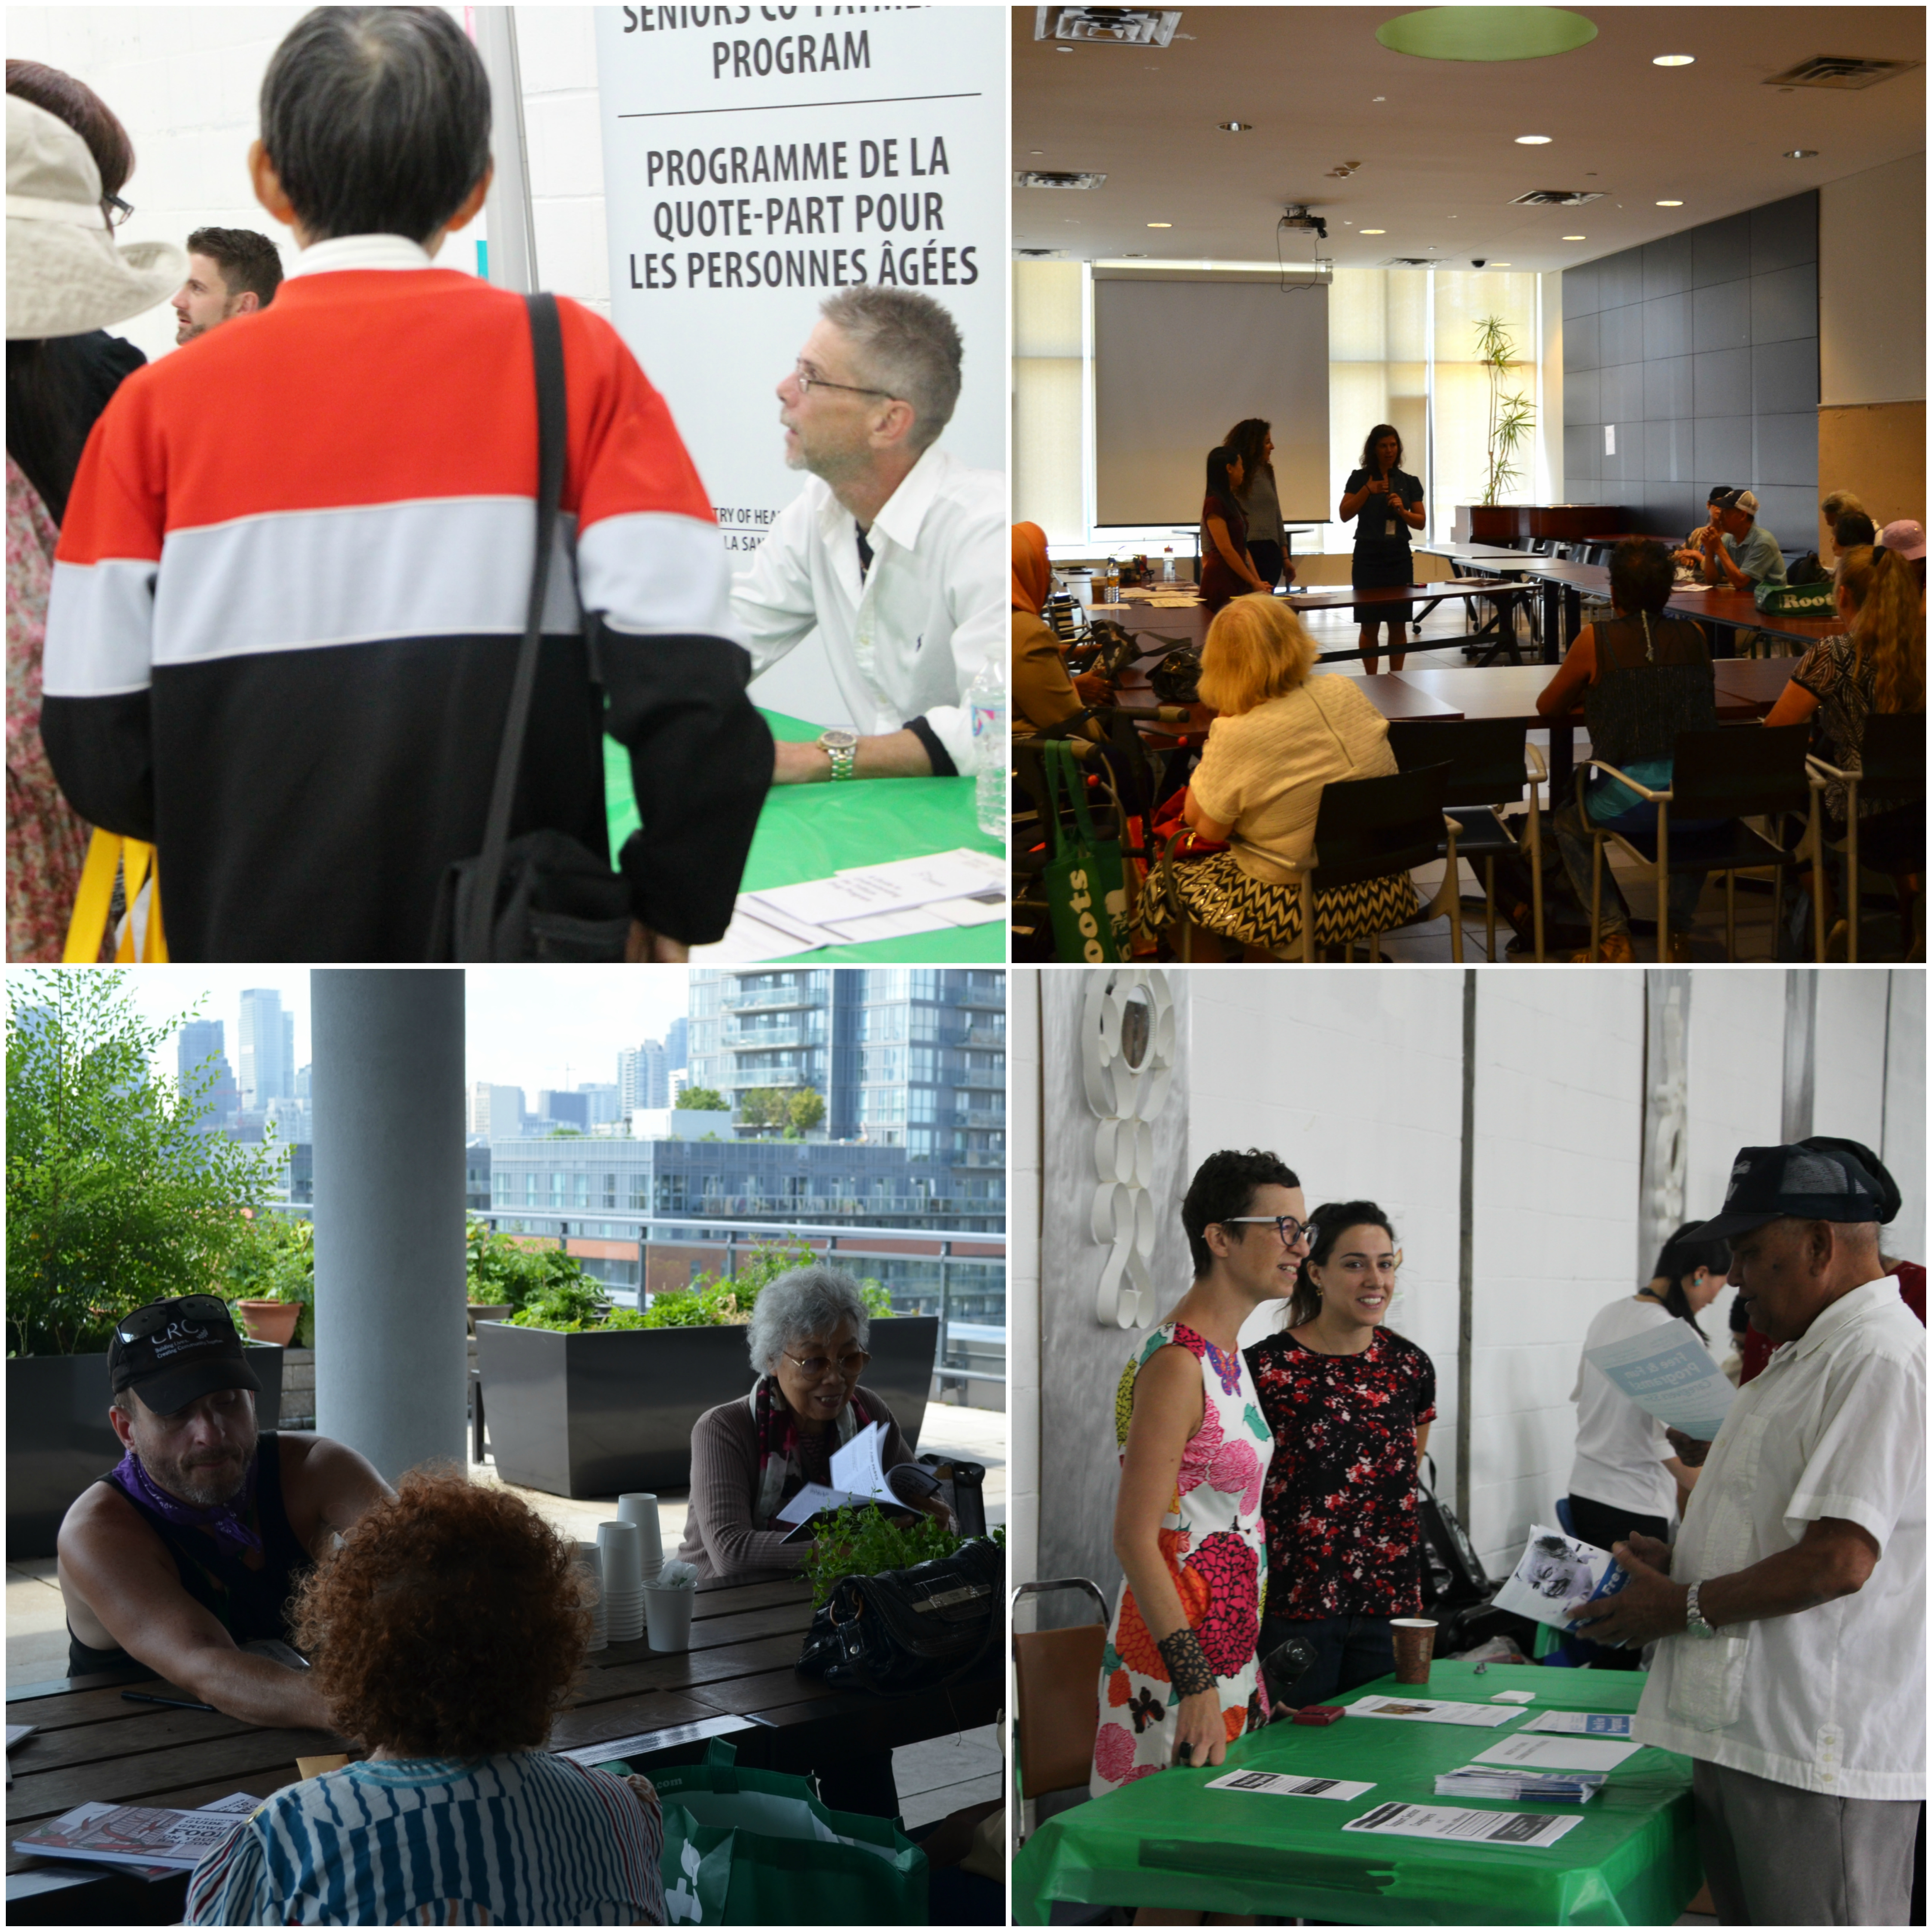 Community agencies infrom residents about support and services in workshops and presentations. ​